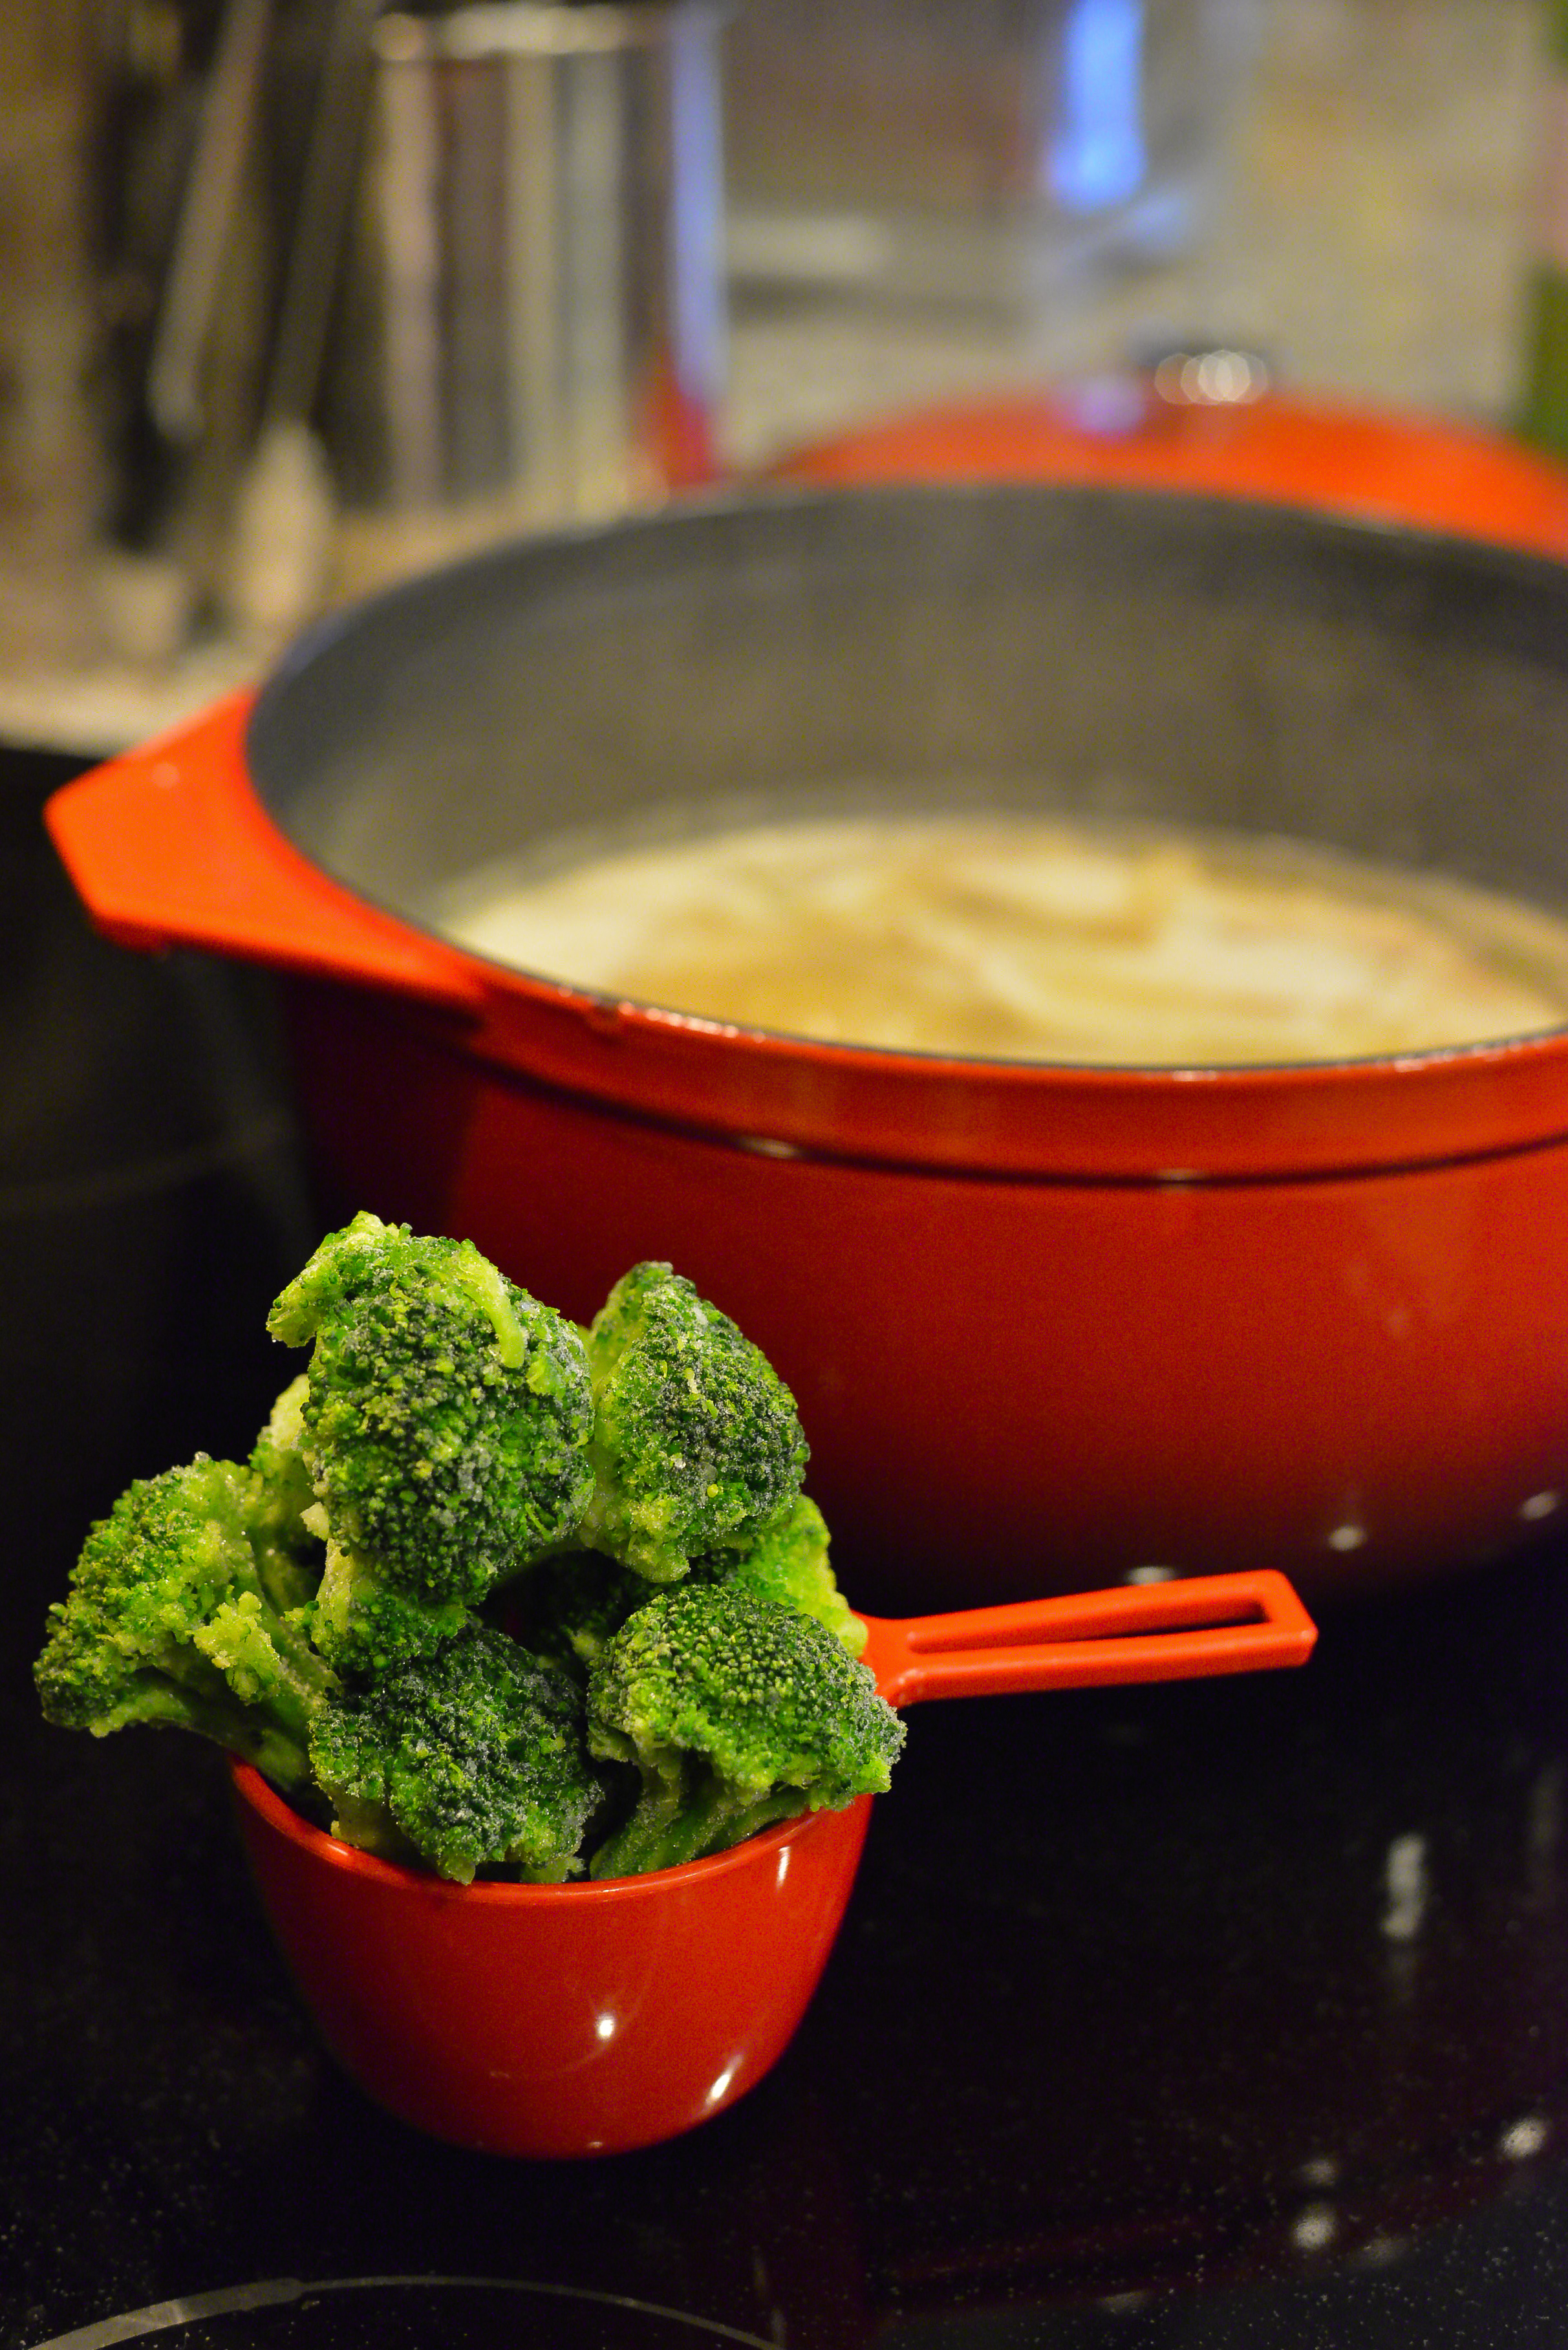 I often use frozen organic broccoli because I usually have a big bag in my freezer. Fresh and frozen varieties are equally nutritious and both work exceptionally well in this dish. If you have fresh, use that! Use what you have on-hand.